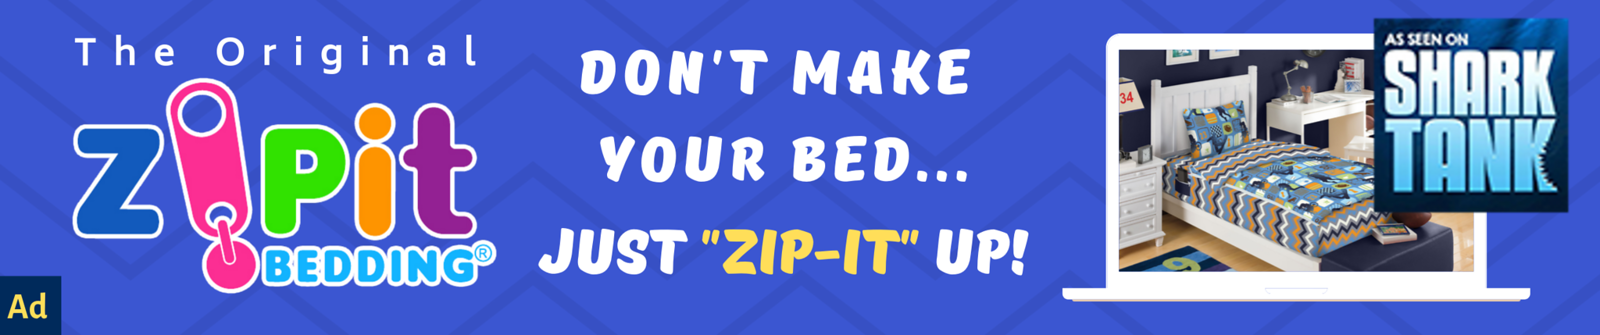 Zipit Bedding: Works Like A Sleeping Bag...You Just Zipit! Say Goodbye To Messy Un-made Beds. Advert for Celebrity wotNot